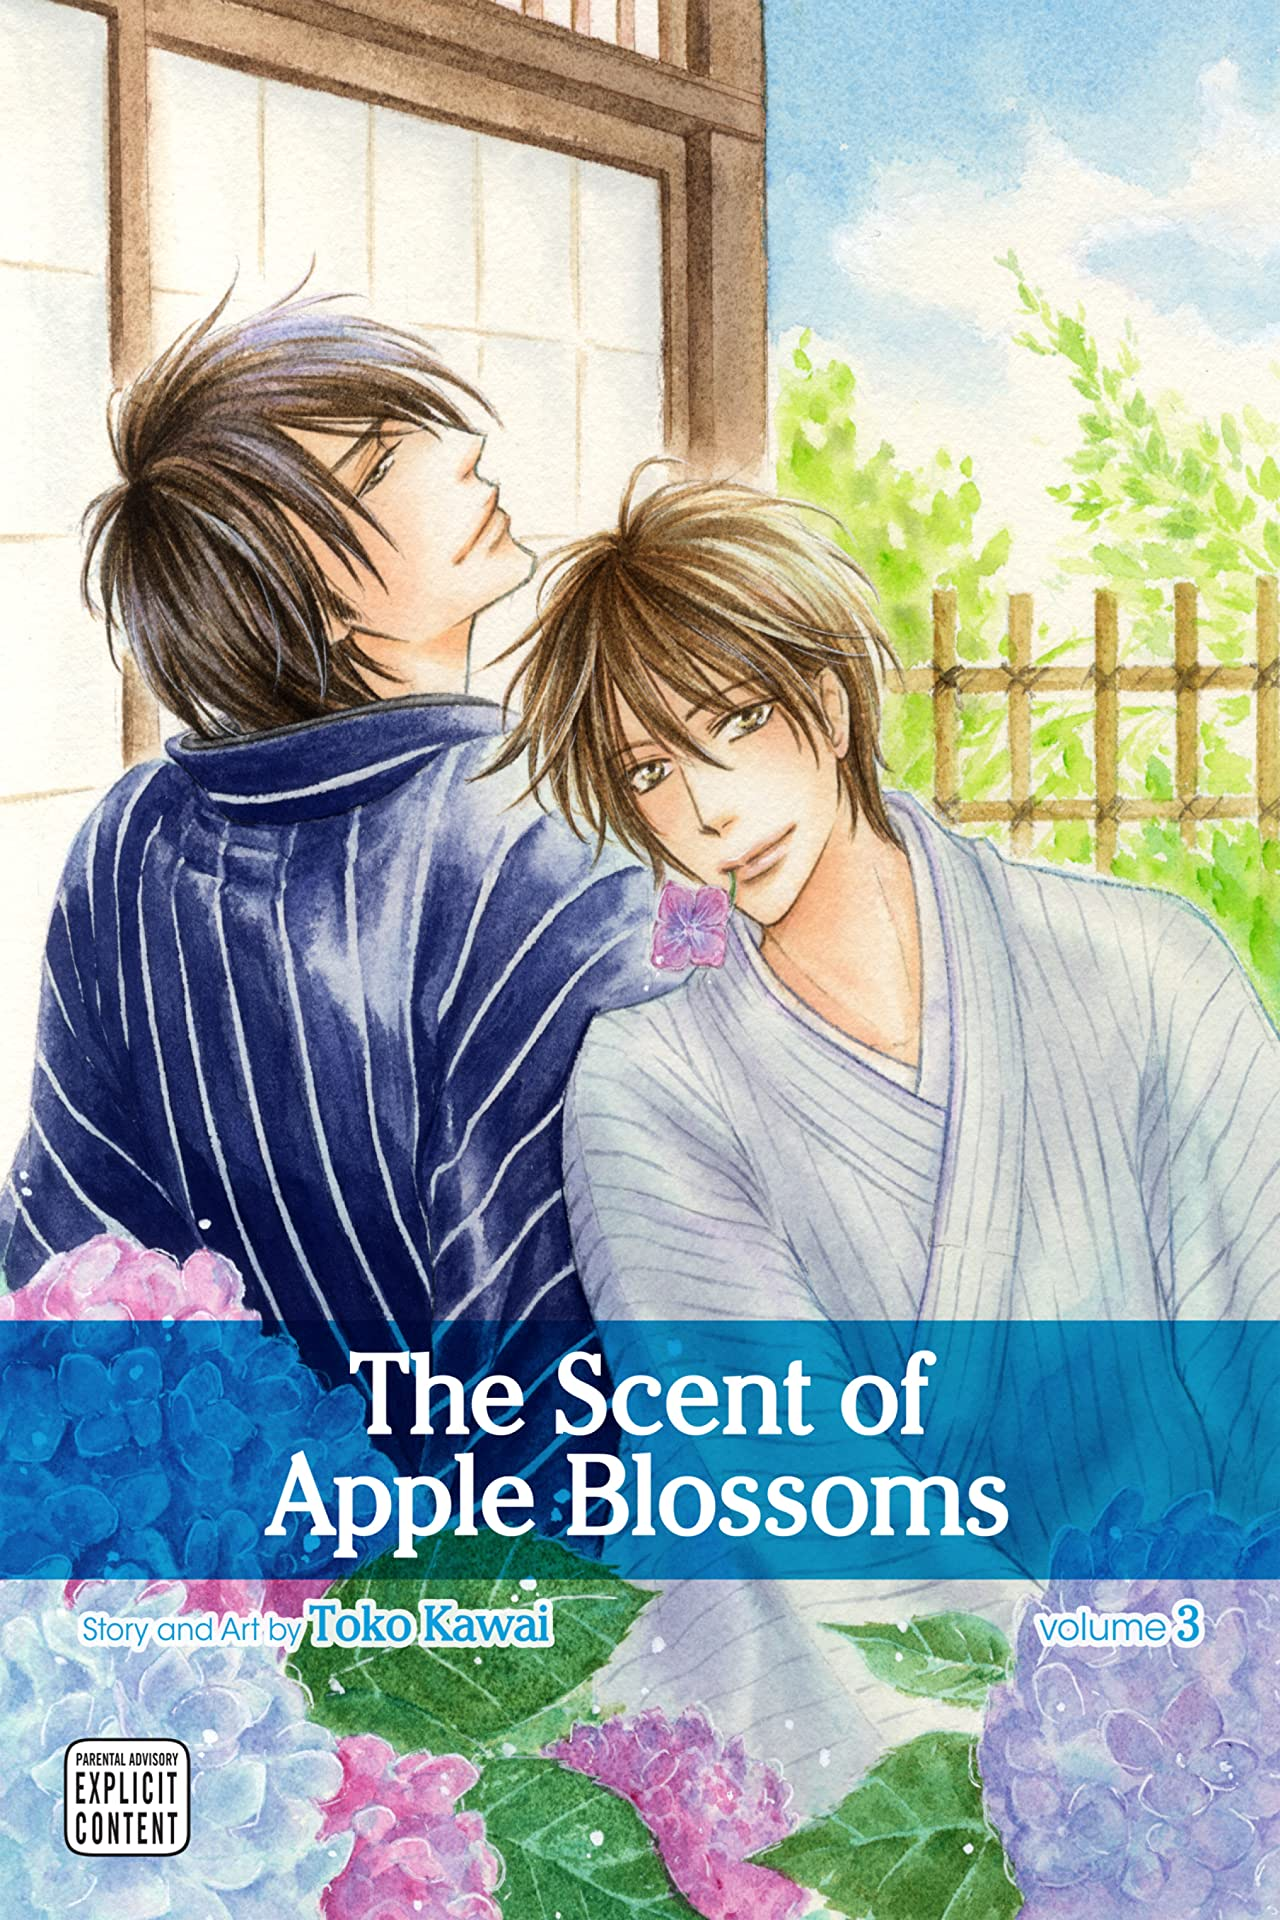 The Scent of Apple Blossoms Vol. 3